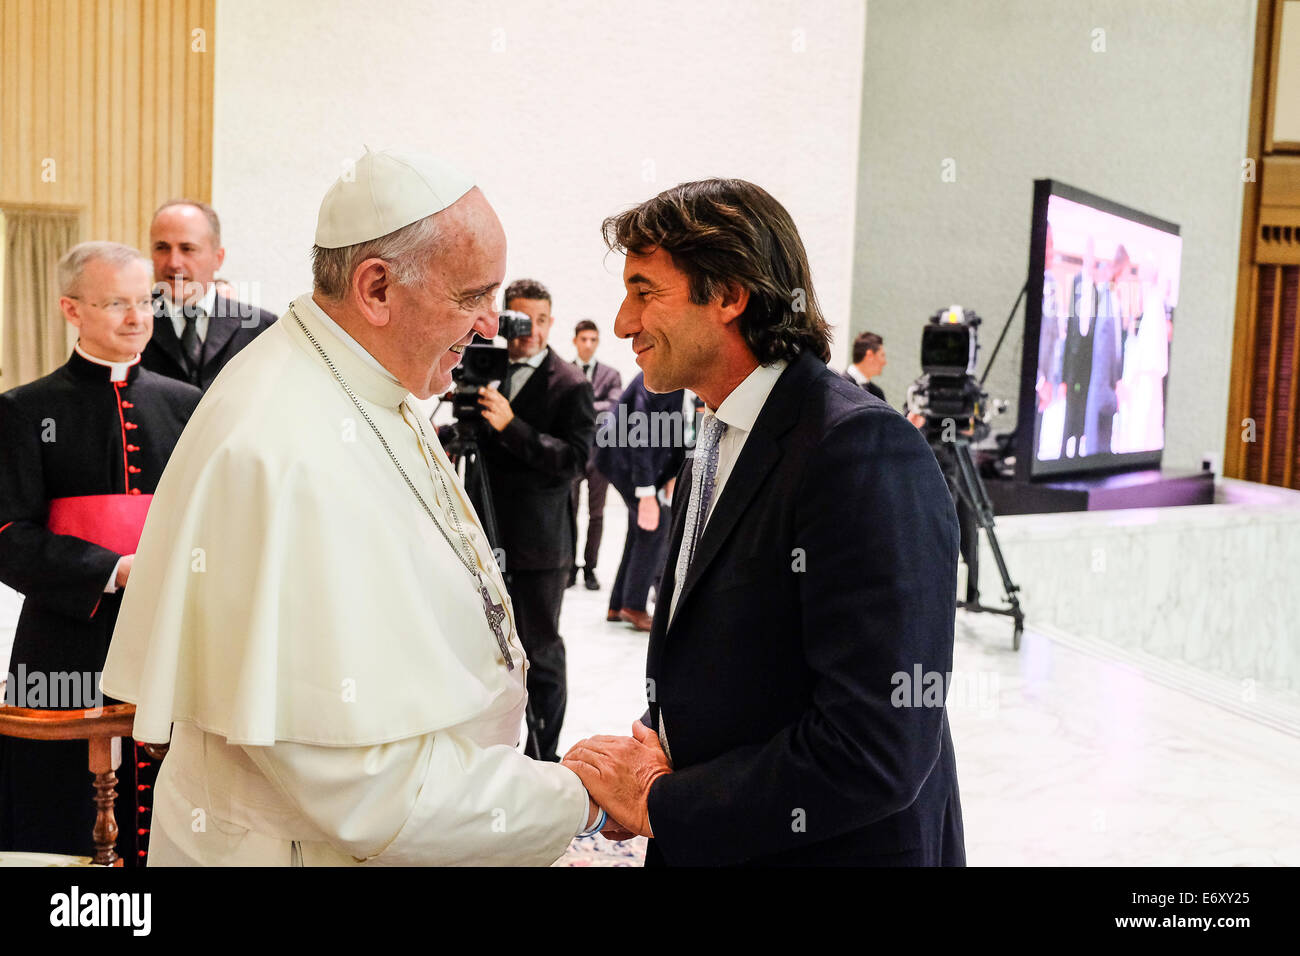 Rome, Italy. 1st Sept, 2014. Pope Francis encounters the football teams of the 'Match fot Peace' played - Stock Image